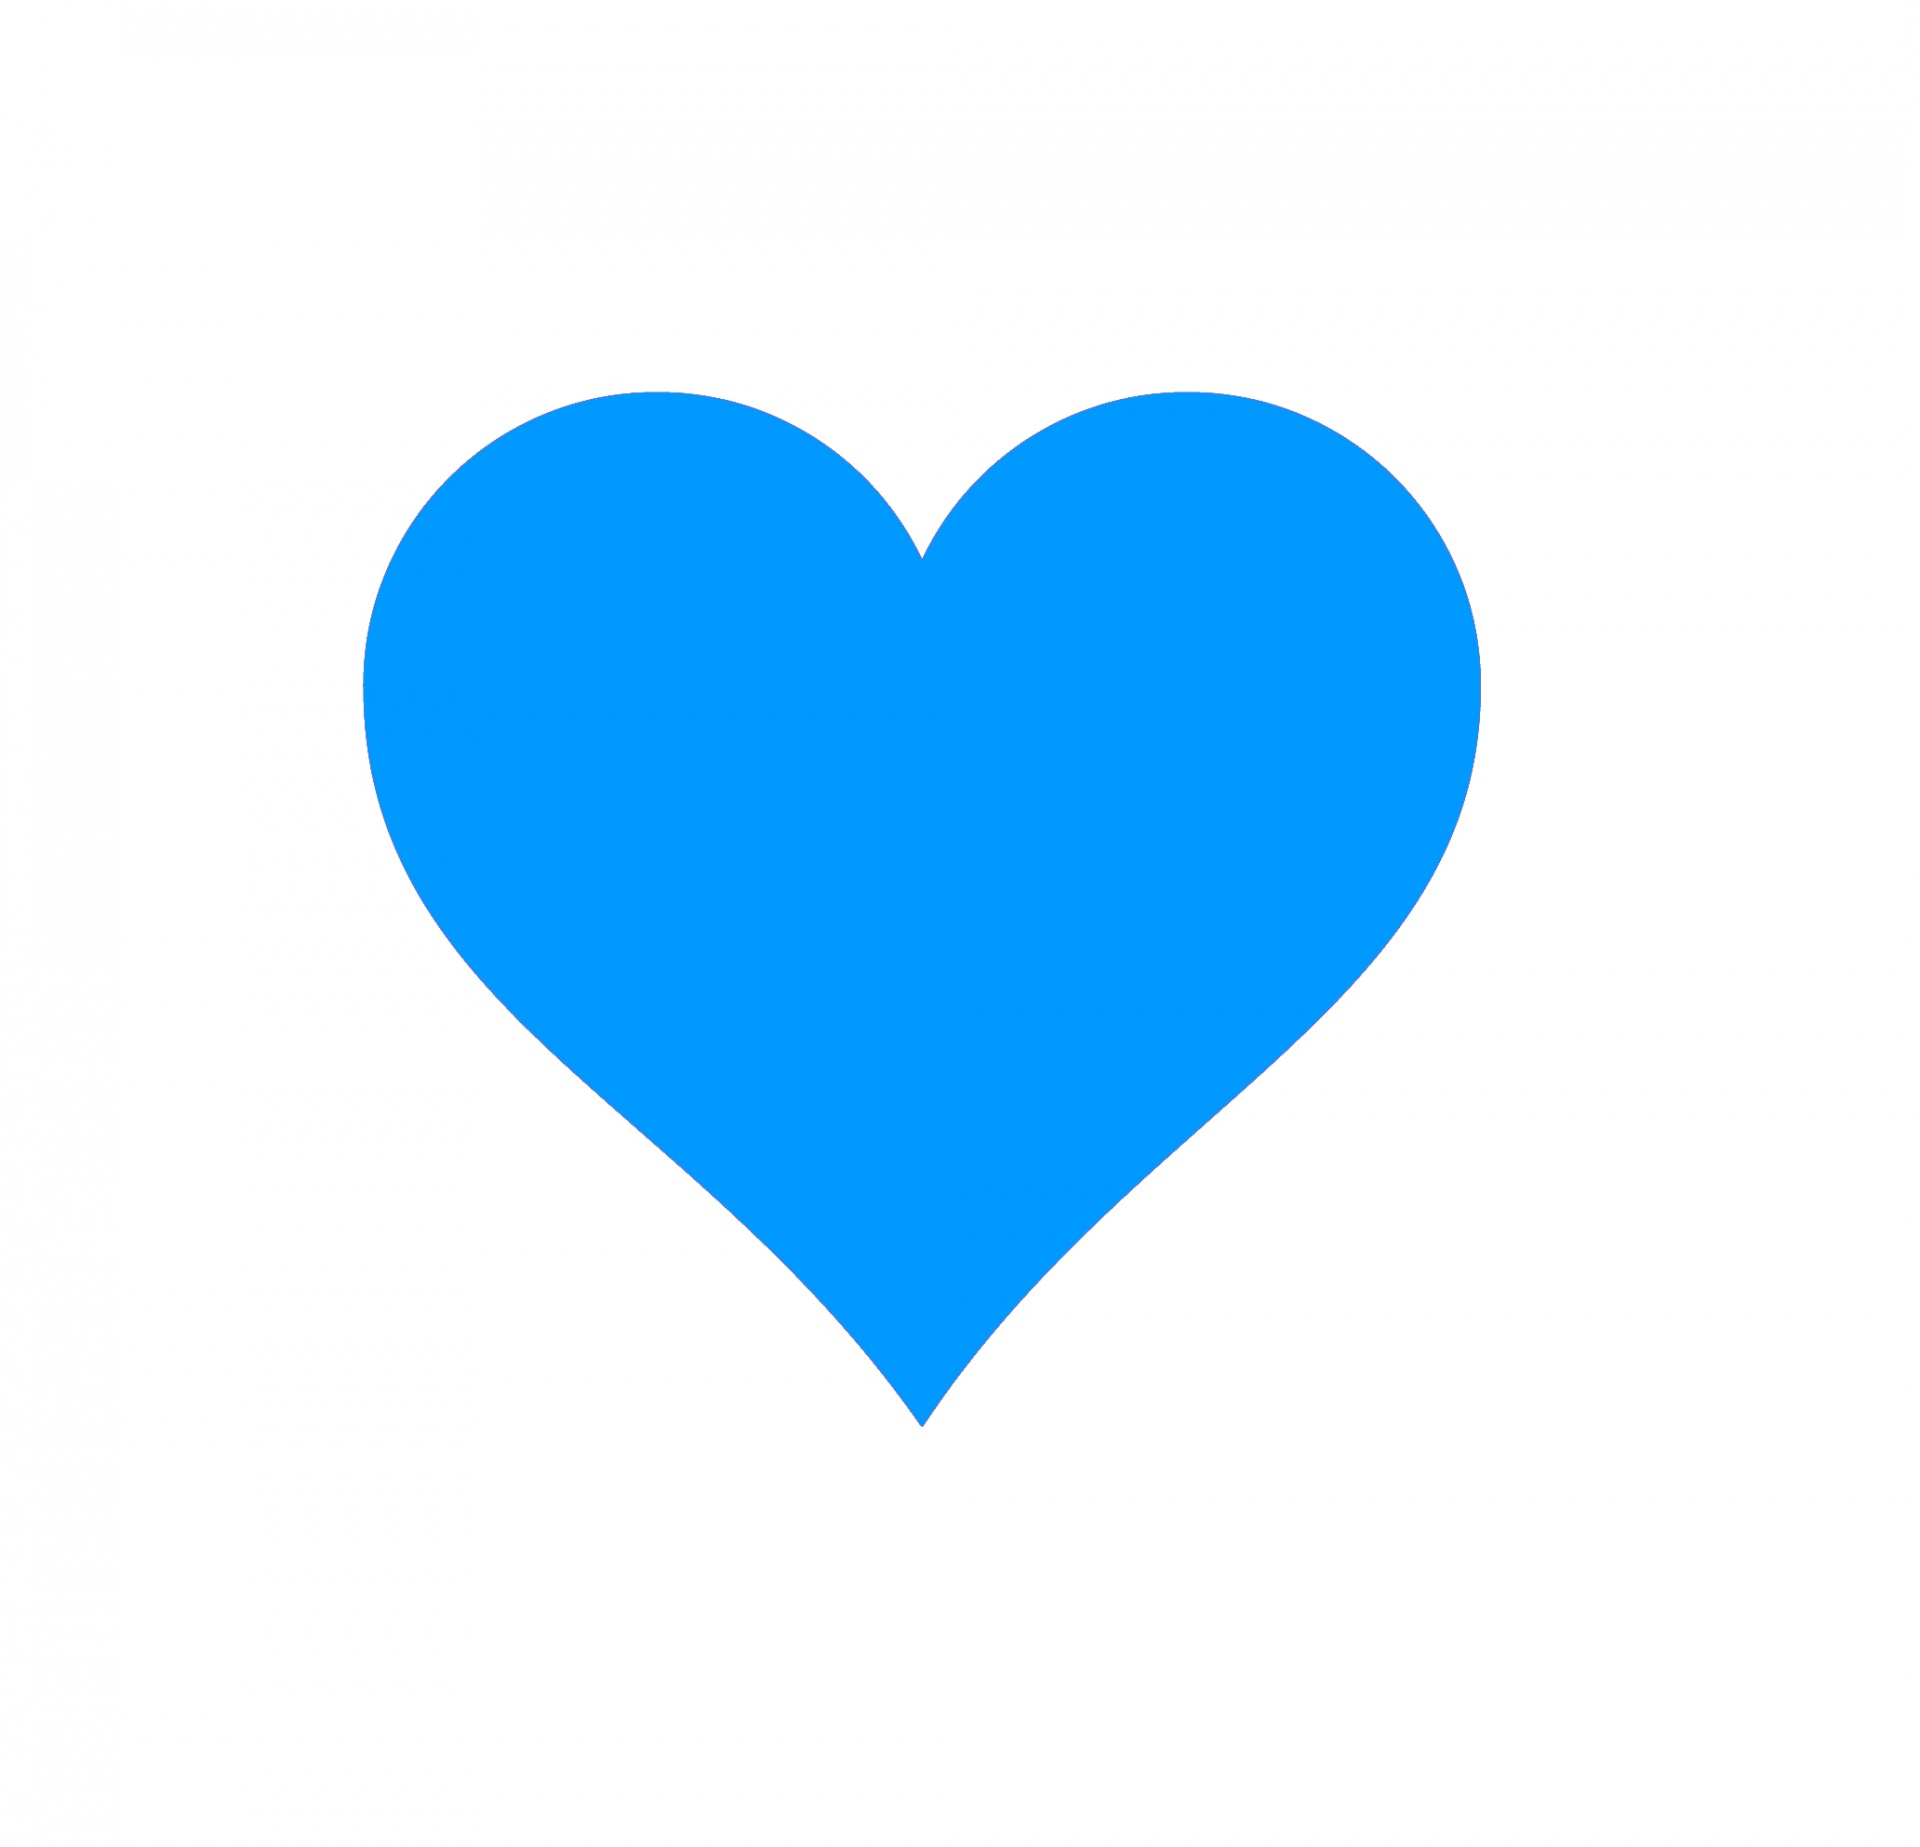 hight resolution of 1920x1847 light blue clipart turquoise heart